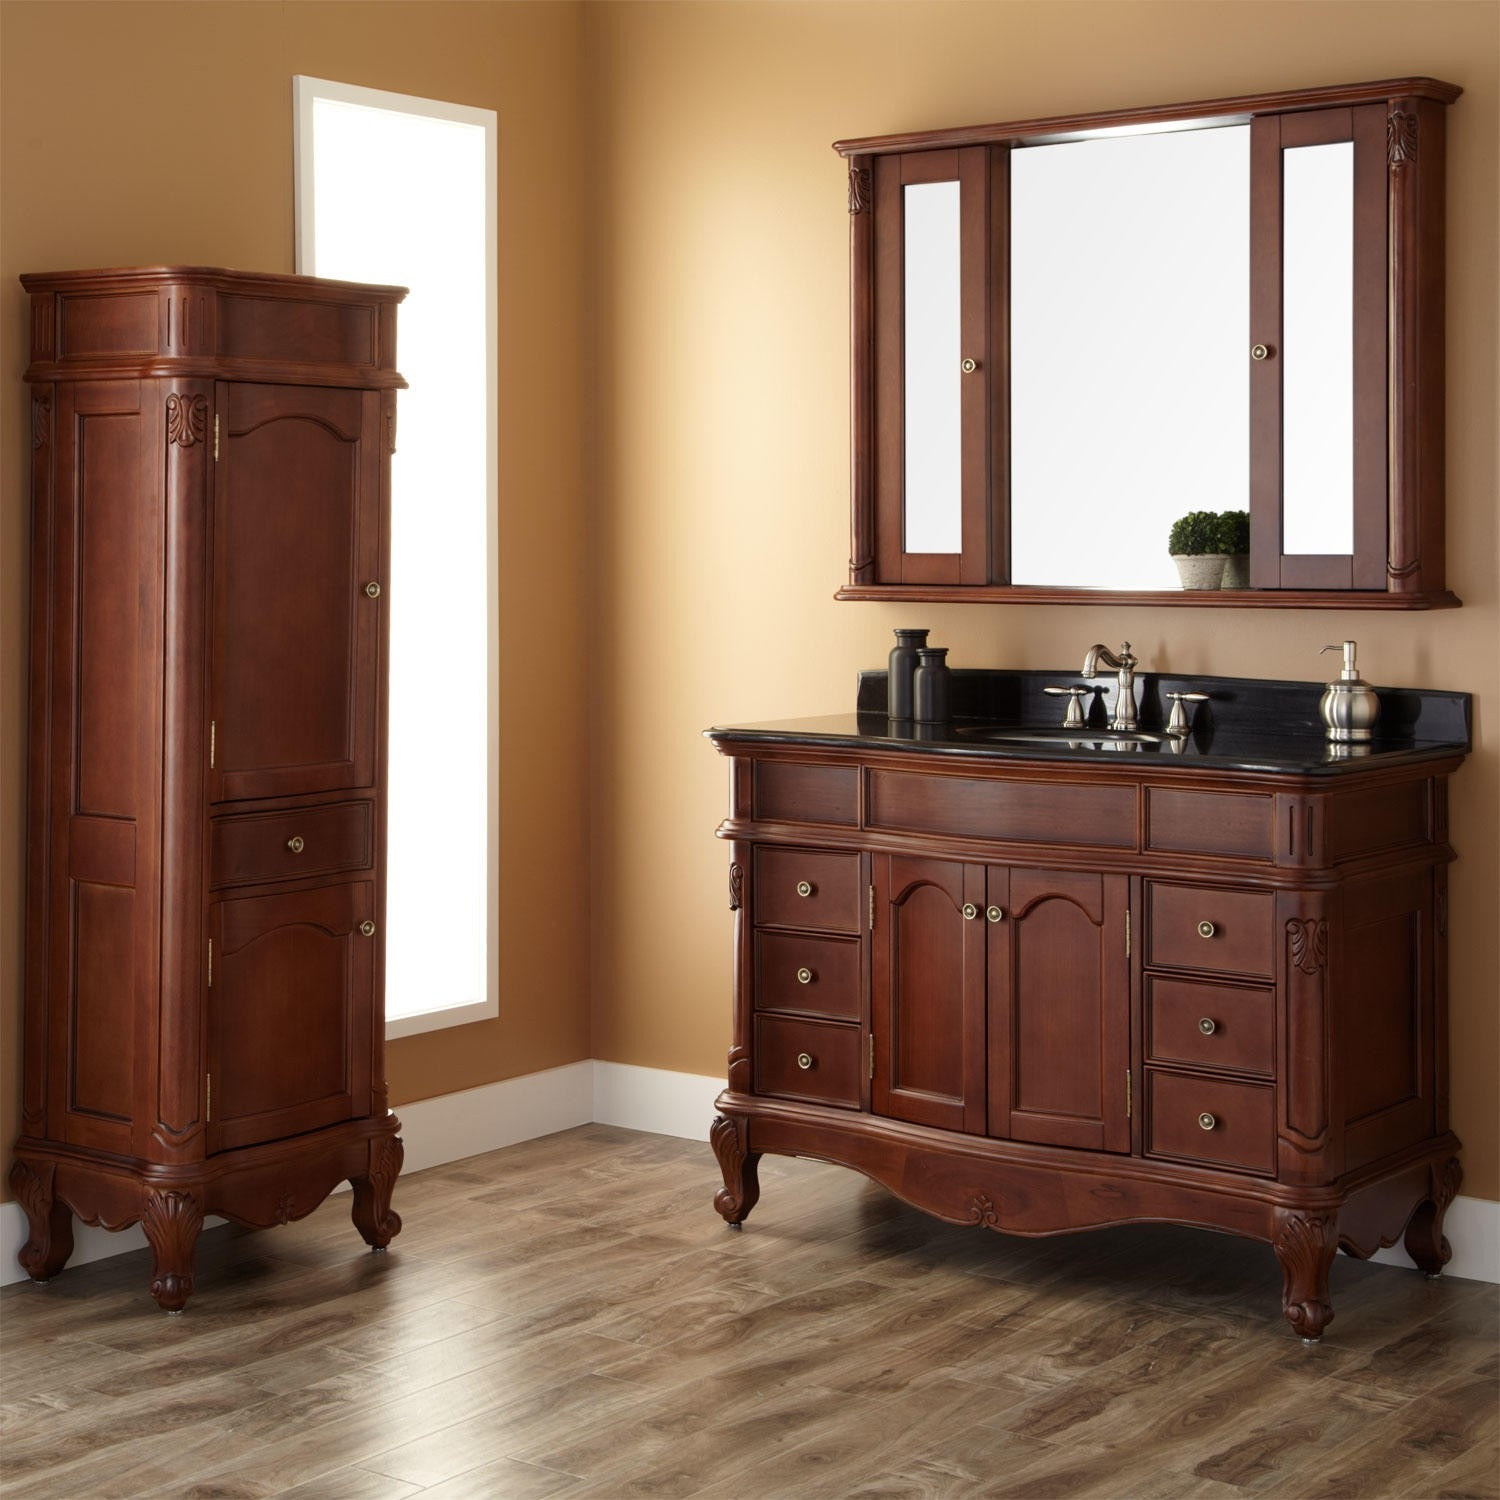 48 Bathroom Vanity With Matching Linen Cabinet